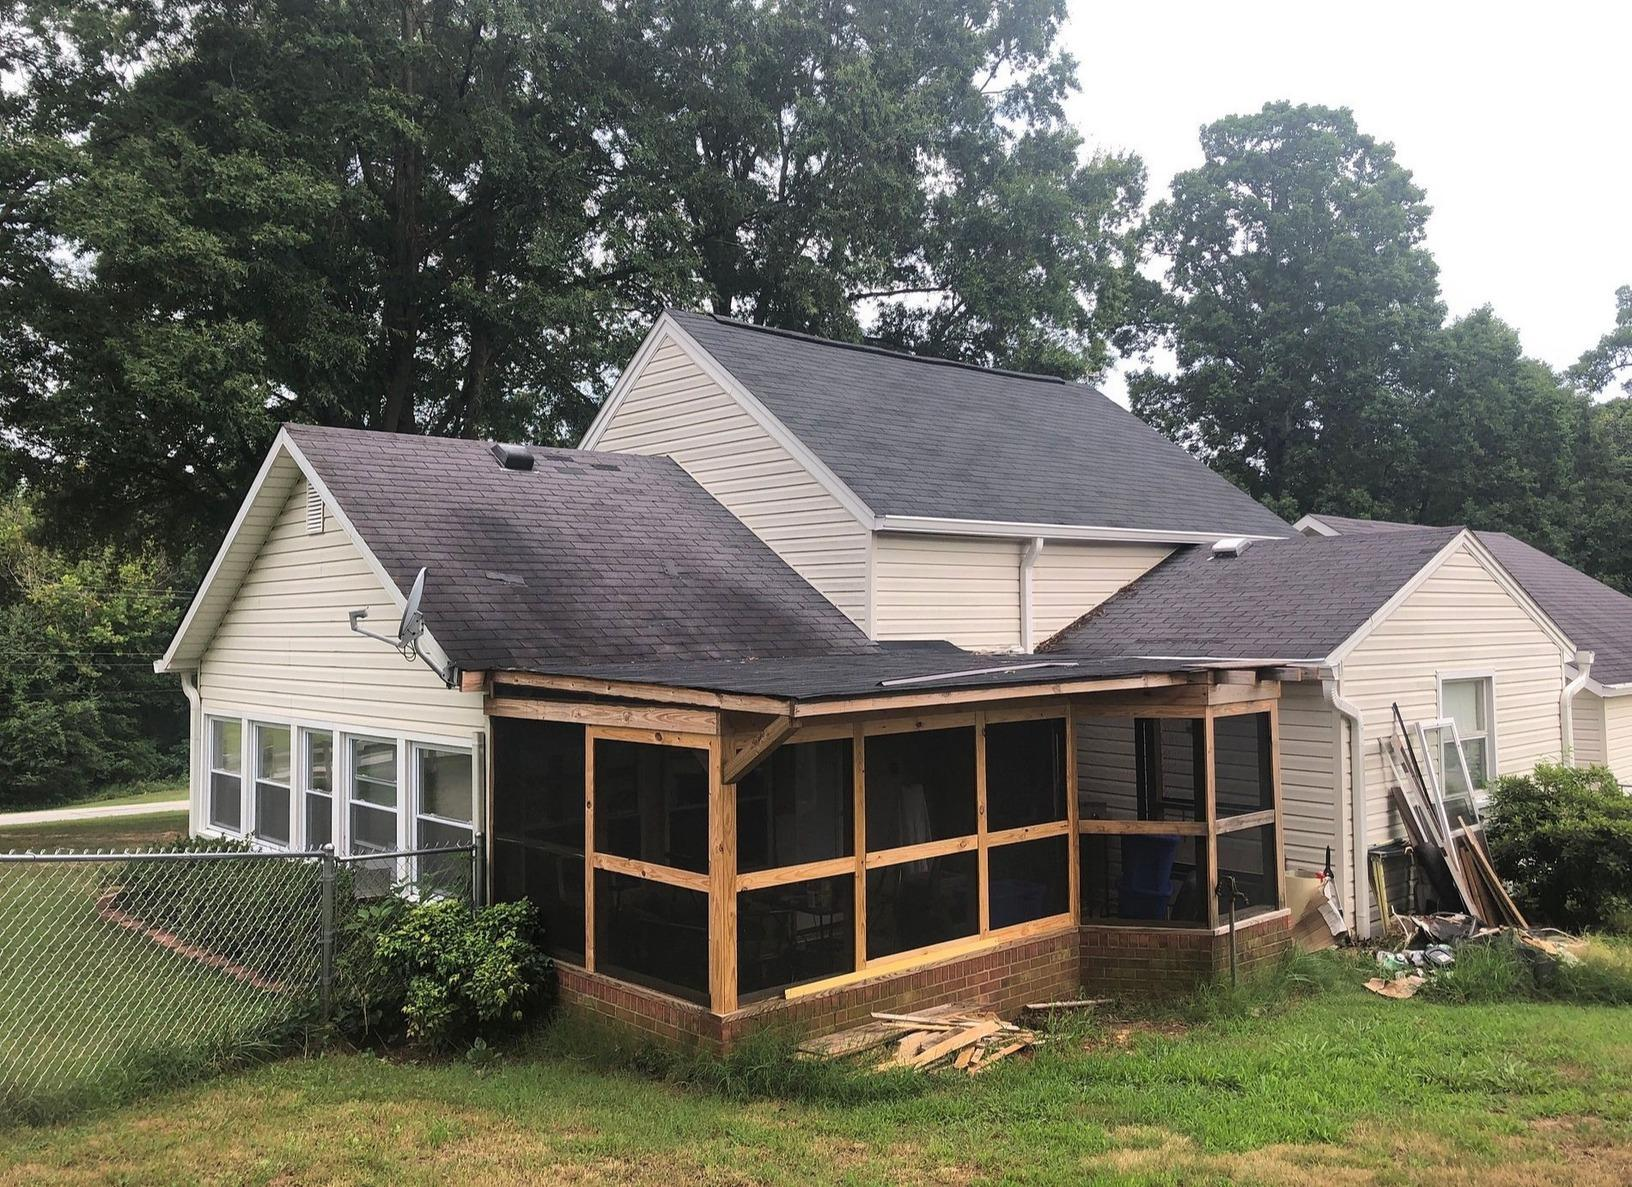 Old Damaged Shingle Roof Replacement in Winston-Salem, NC - Before Photo